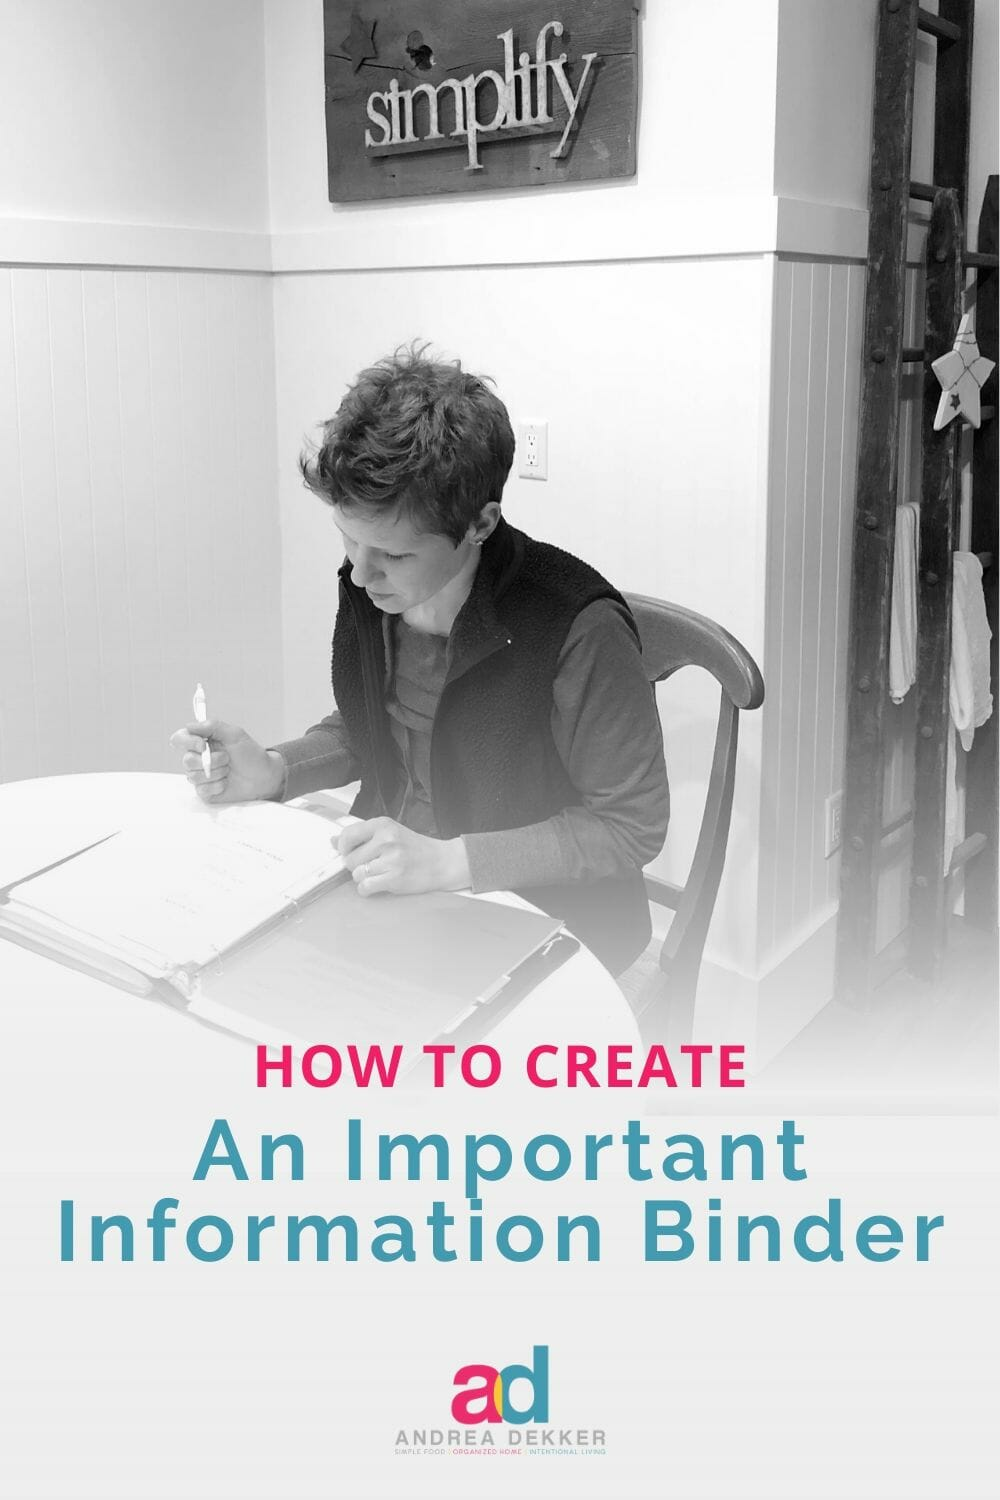 how to create an important information binder